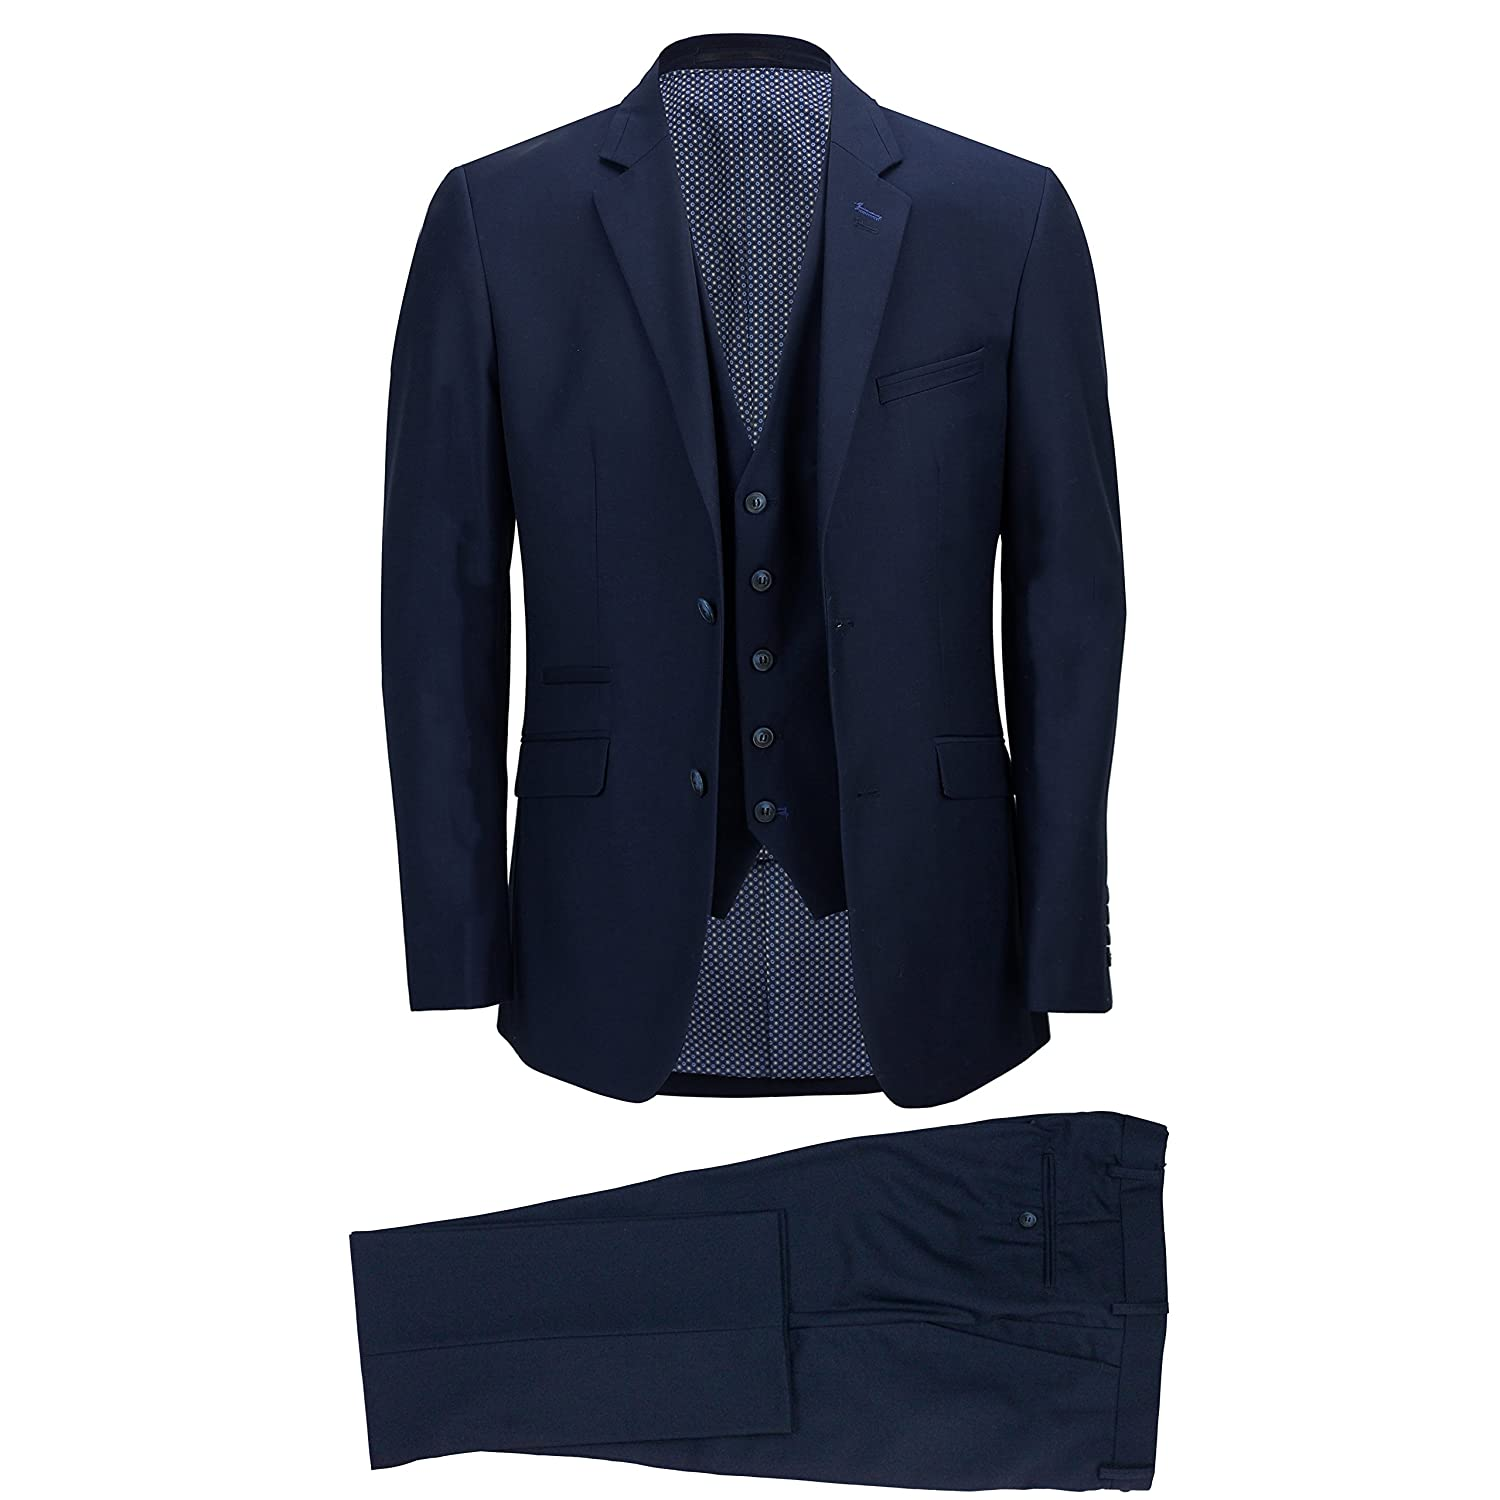 Cavani Men's Blue Smart Formal Tailored Fitted 3 Piece Suit – Blazer Waistcoat Trouser